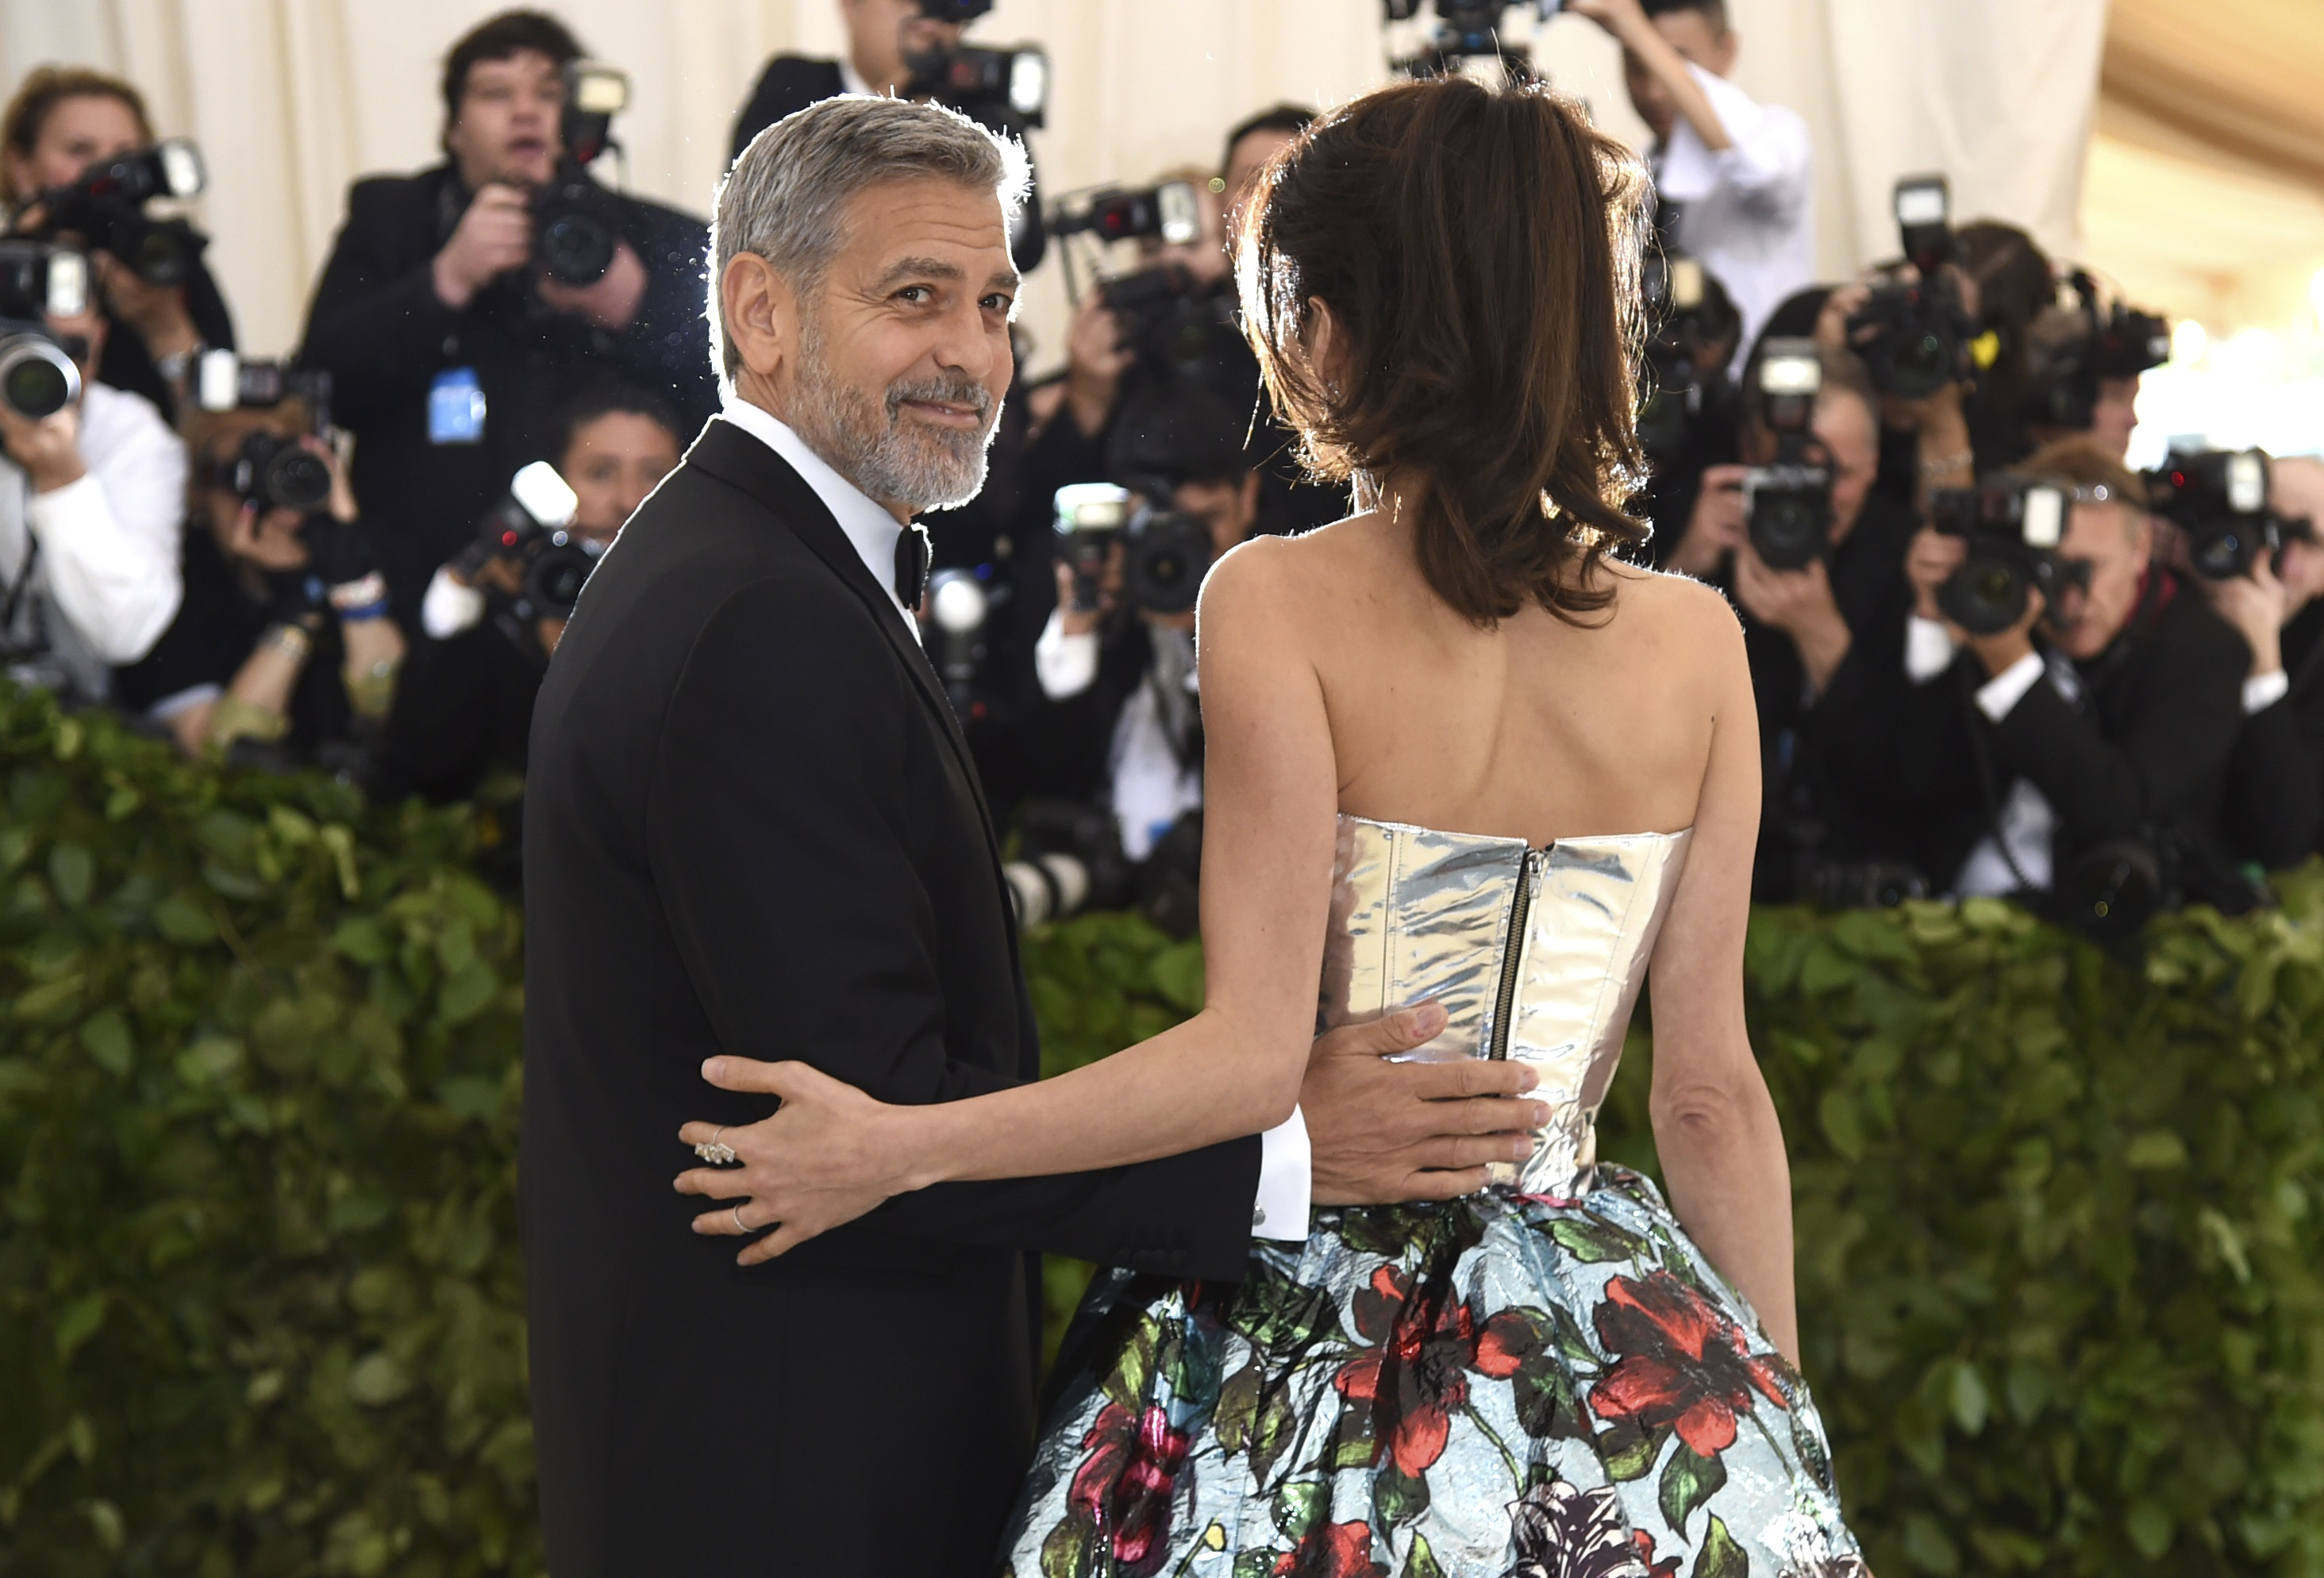 "<div class=""meta image-caption""><div class=""origin-logo origin-image ap""><span>AP</span></div><span class=""caption-text"">George Clooney, left, and Amal Clooney. (Photo by Evan Agostini/Invision/AP) (Evan Agostini/Invision/AP)</span></div>"